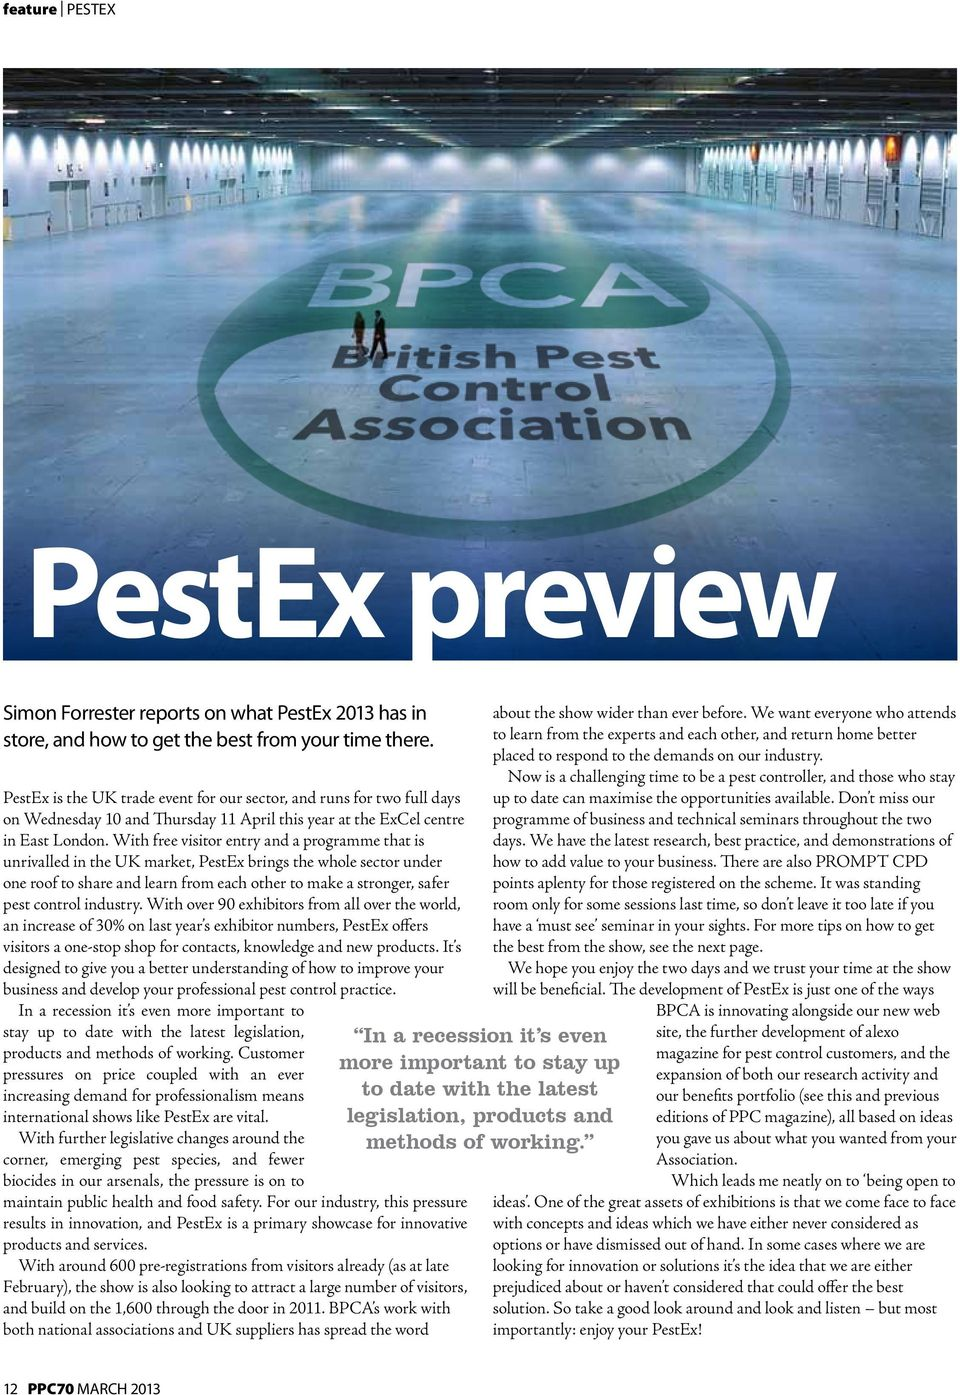 With free visitor entry and a programme that is unrivalled in the UK market, PestEx brings the whole sector under one roof to share and learn from each other to make a stronger, safer pest control